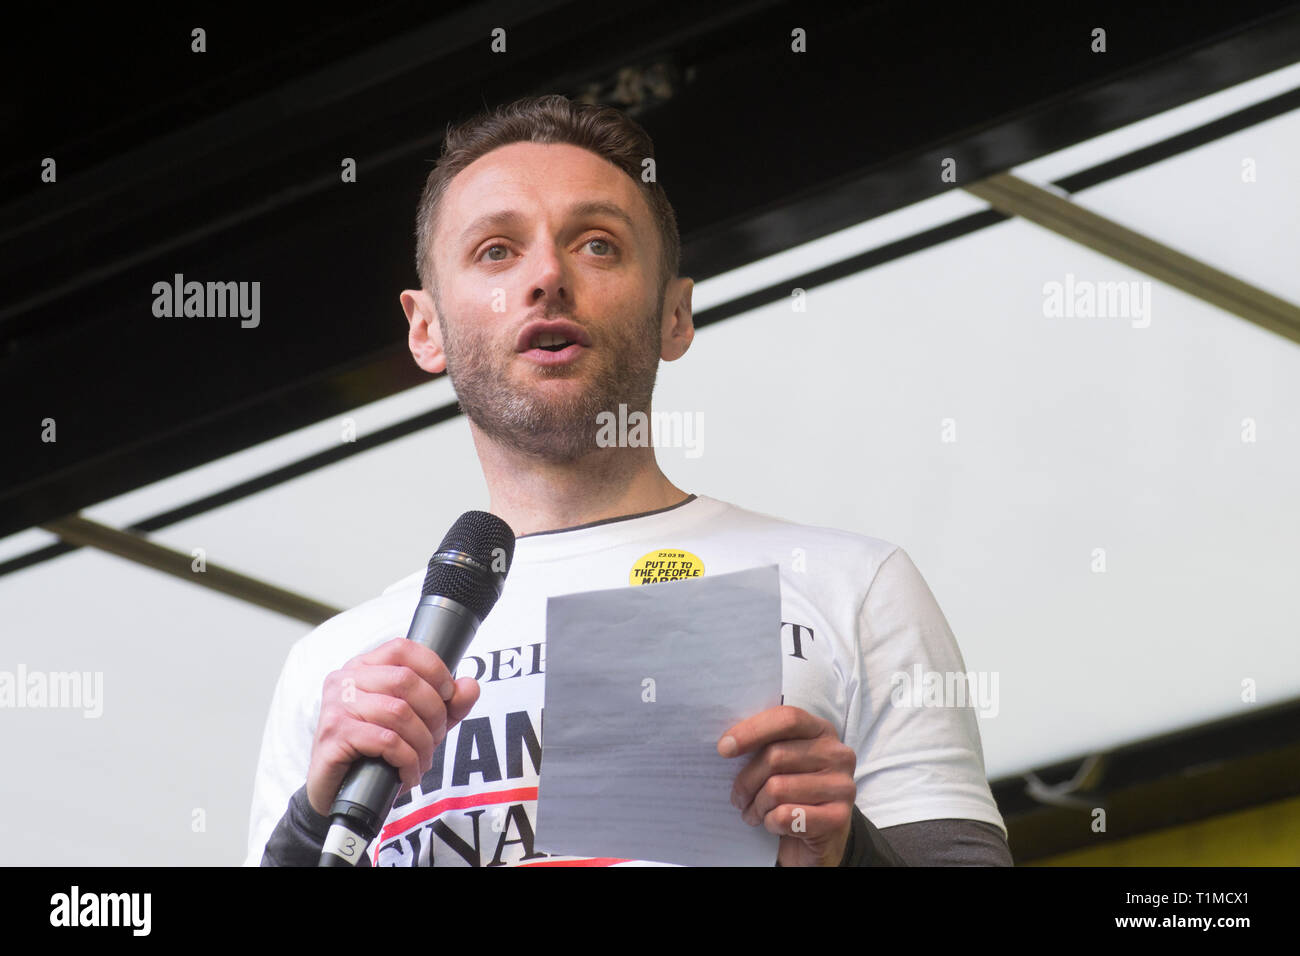 """London, UK - 23 March 2019 - Christian Broughton (editor of the Independant) speaking at the """"Put it to the People"""" march and rally attended by around Stock Photo"""